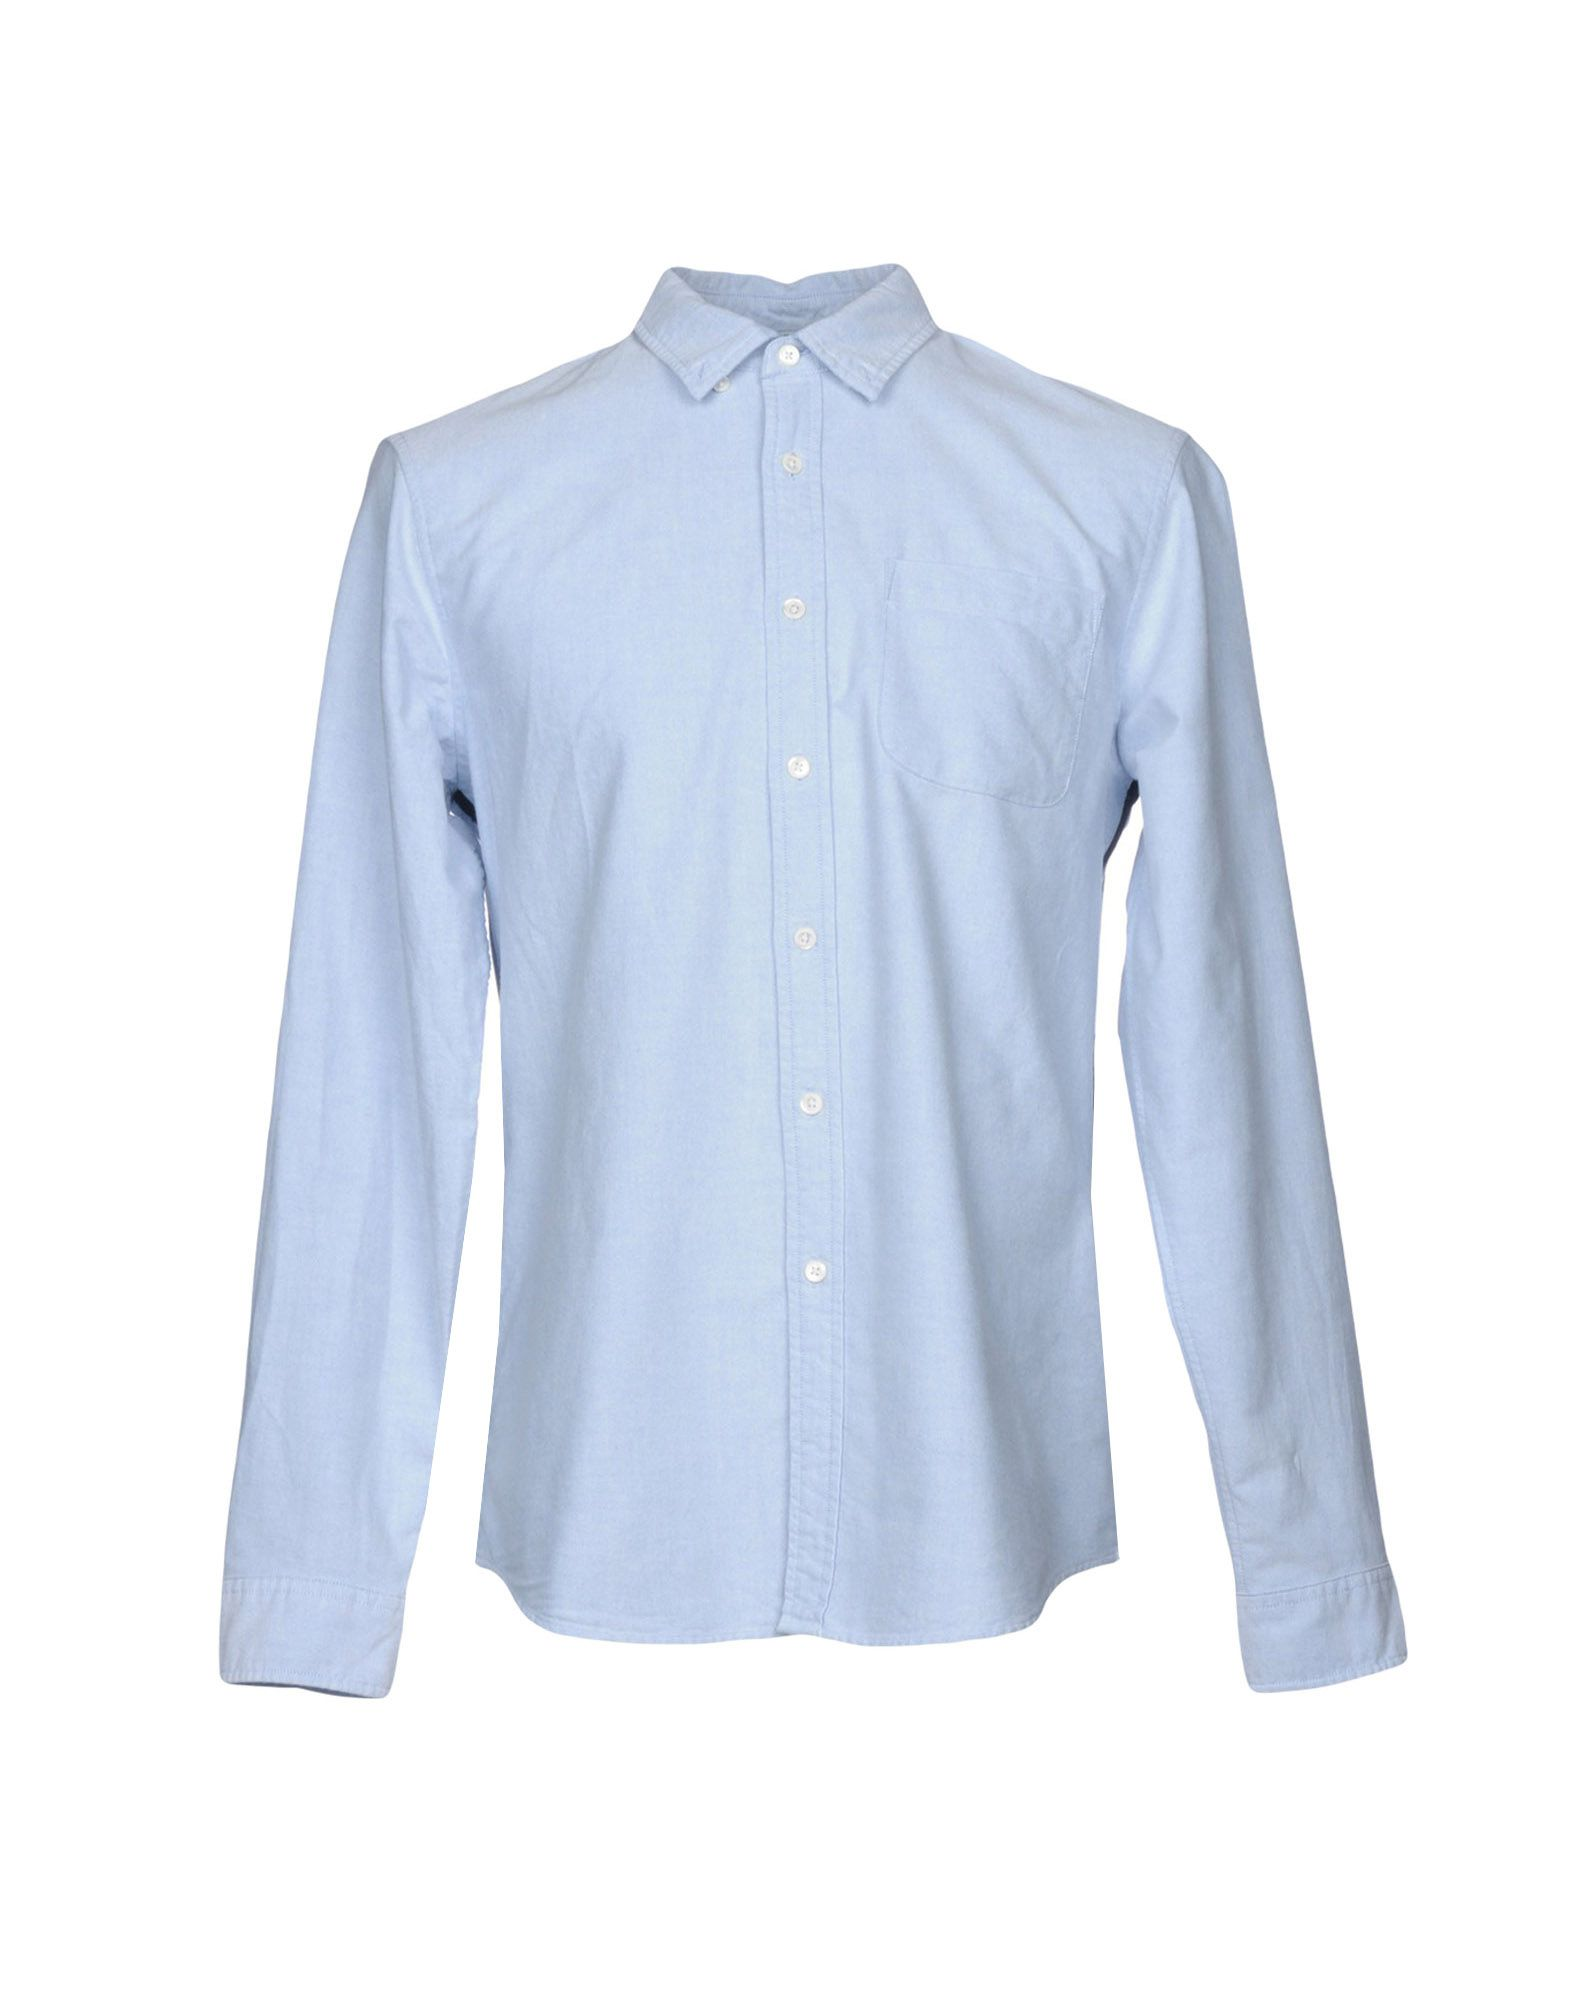 OUTERKNOWN Solid Color Shirt in Sky Blue